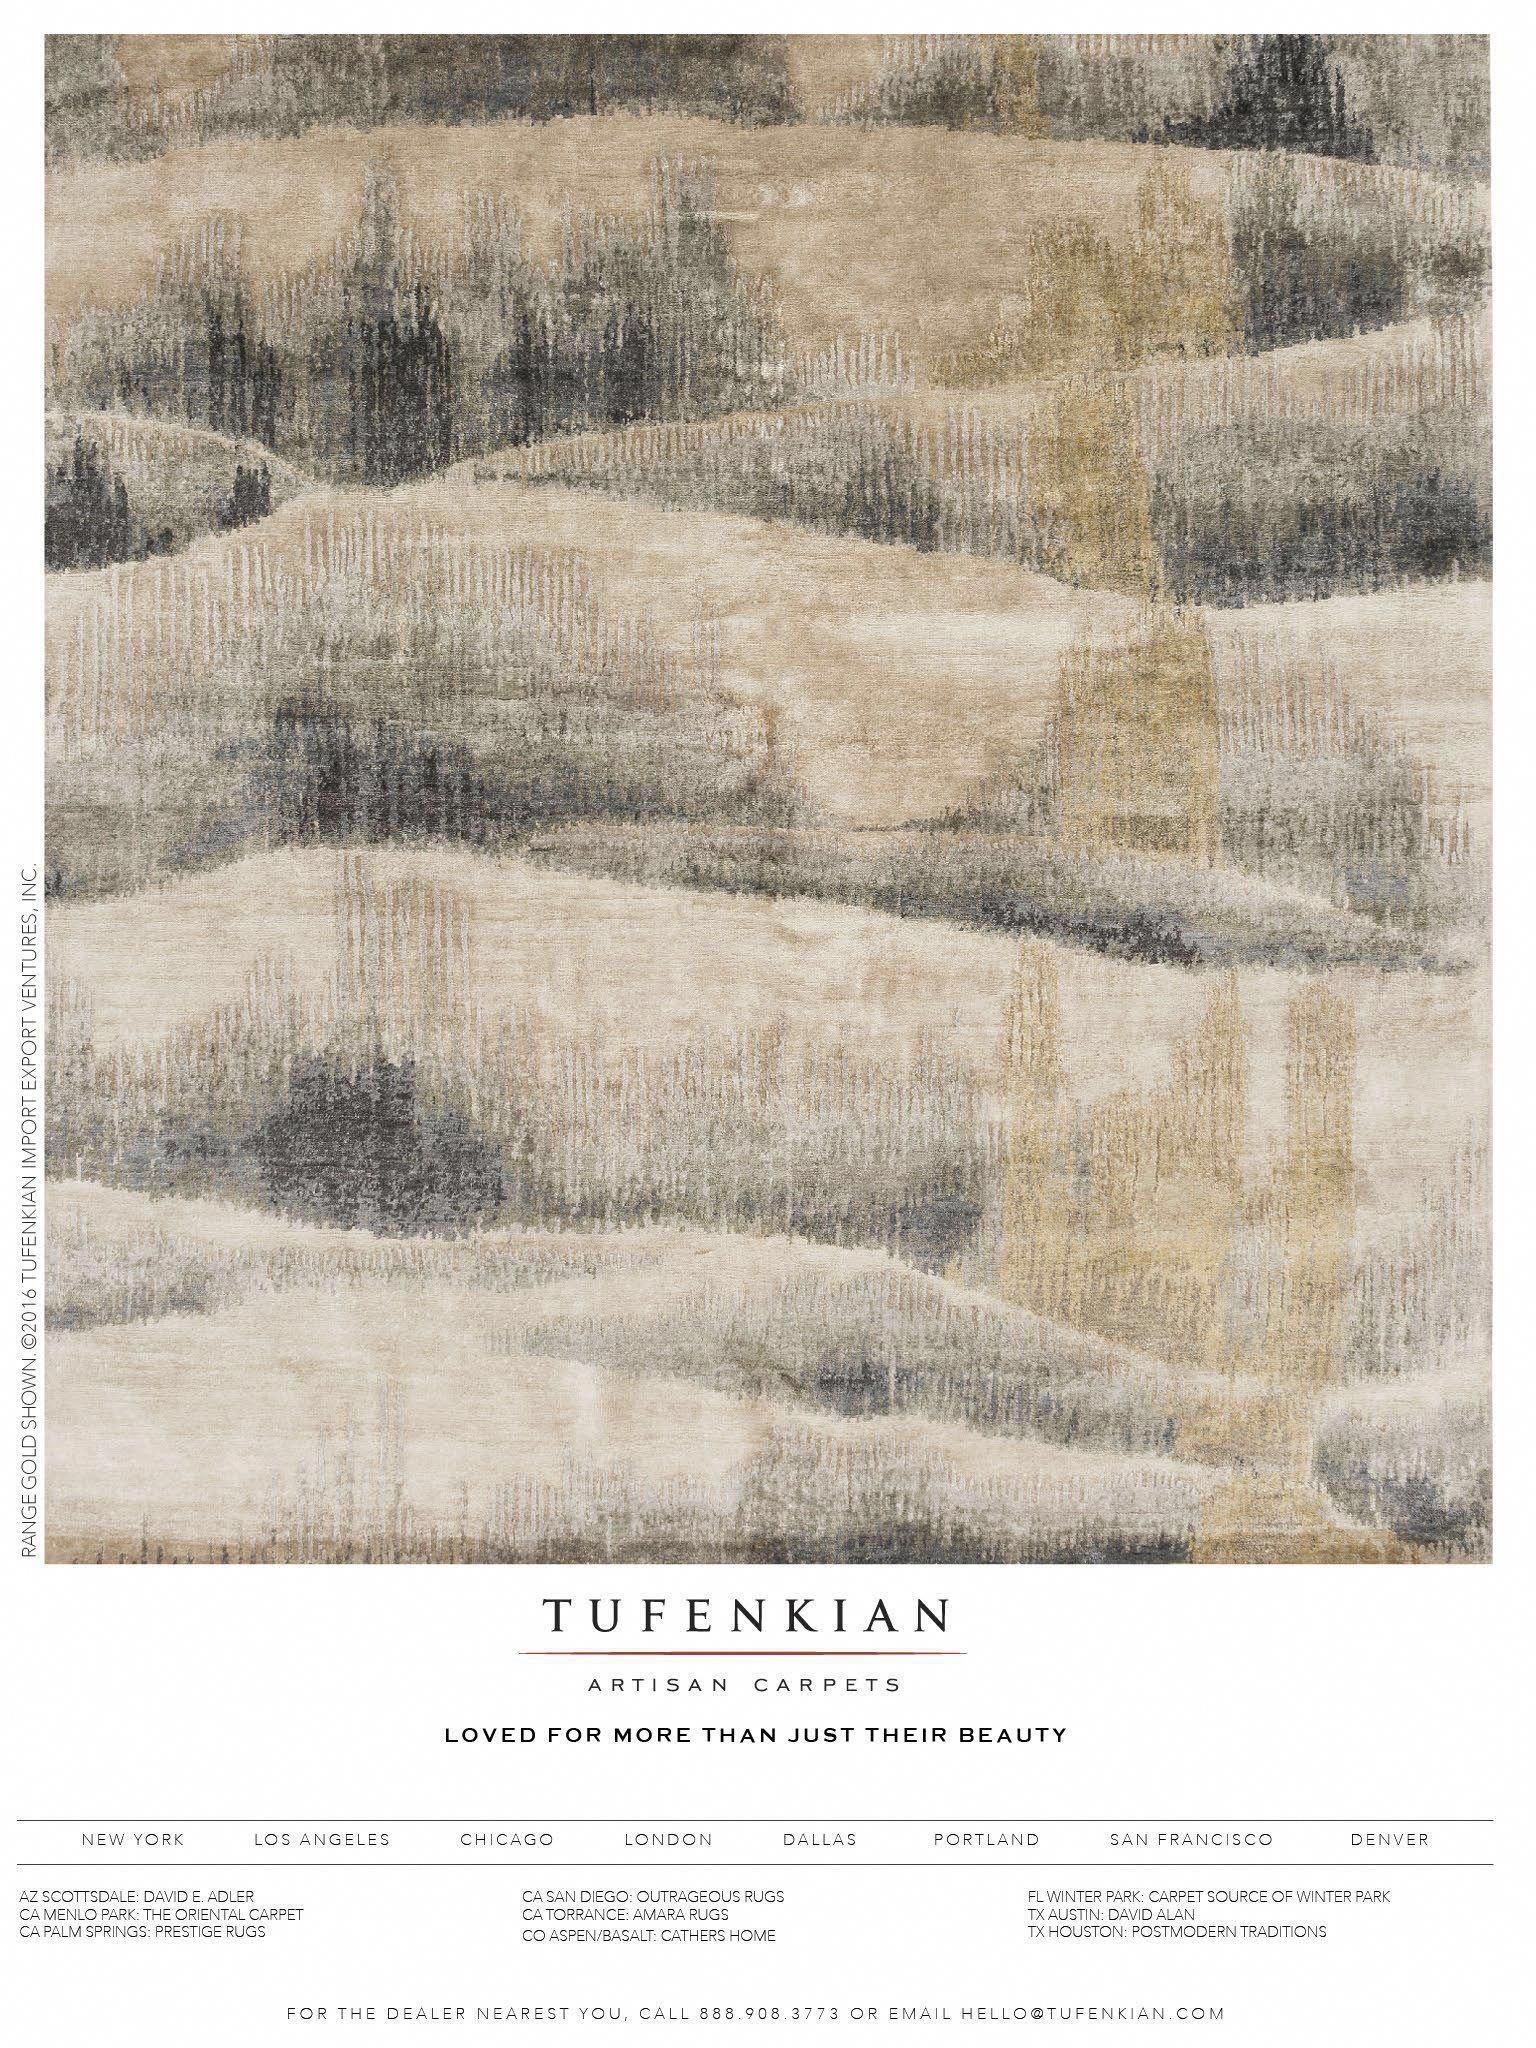 Tufenkian Artisan Carpets Nouvelle Spectrum From Architectural